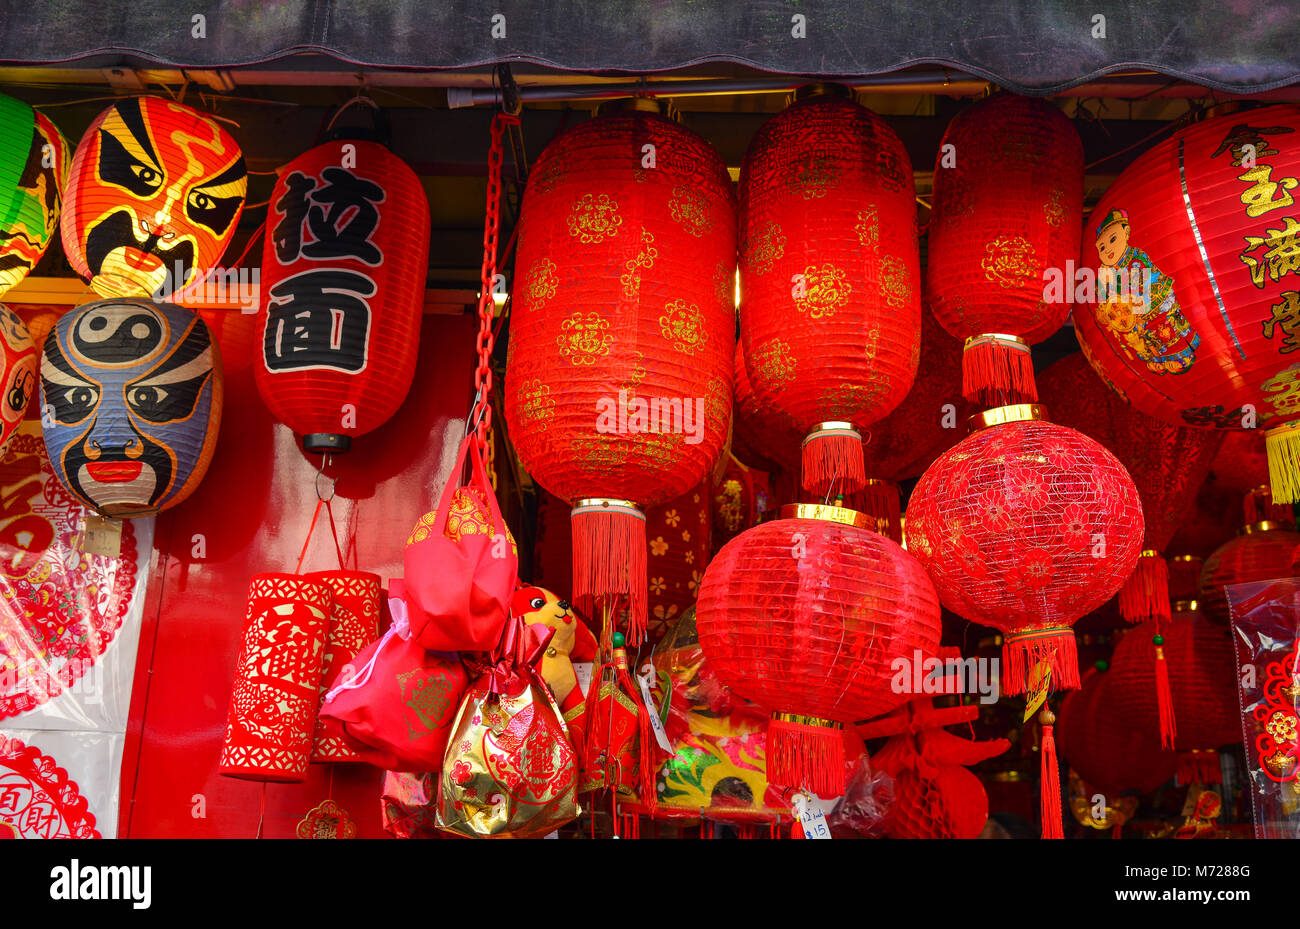 e07fcec96 School Exhibition of Mid Autumn Festival Chinese Paper Lanterns in Chinatown,  Singapore. Image ID: DH8AGP (RM). Singapore - Feb 9, 2018. Chinese red ...